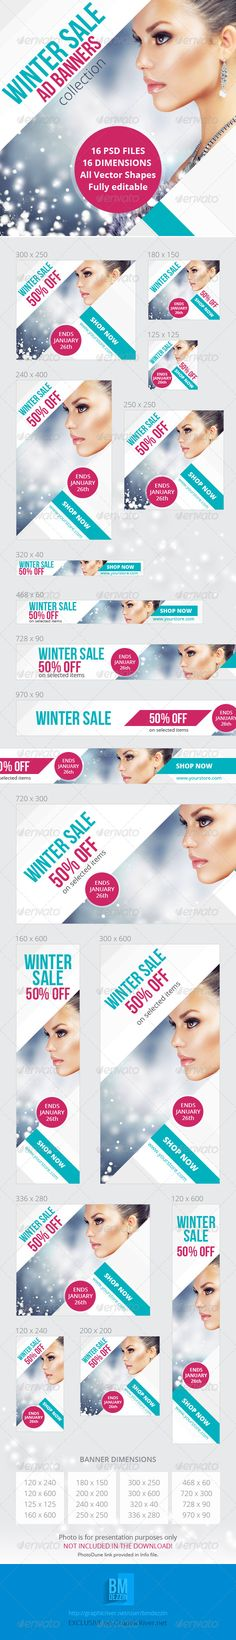 Winter Sale Ad Web Banners Template PSD | Buy and Download: http://graphicriver.net/item/winter-sale-ad-banners/6019684?WT.ac=category_thumb&WT.z_author=bmdezzin&ref=ksioks